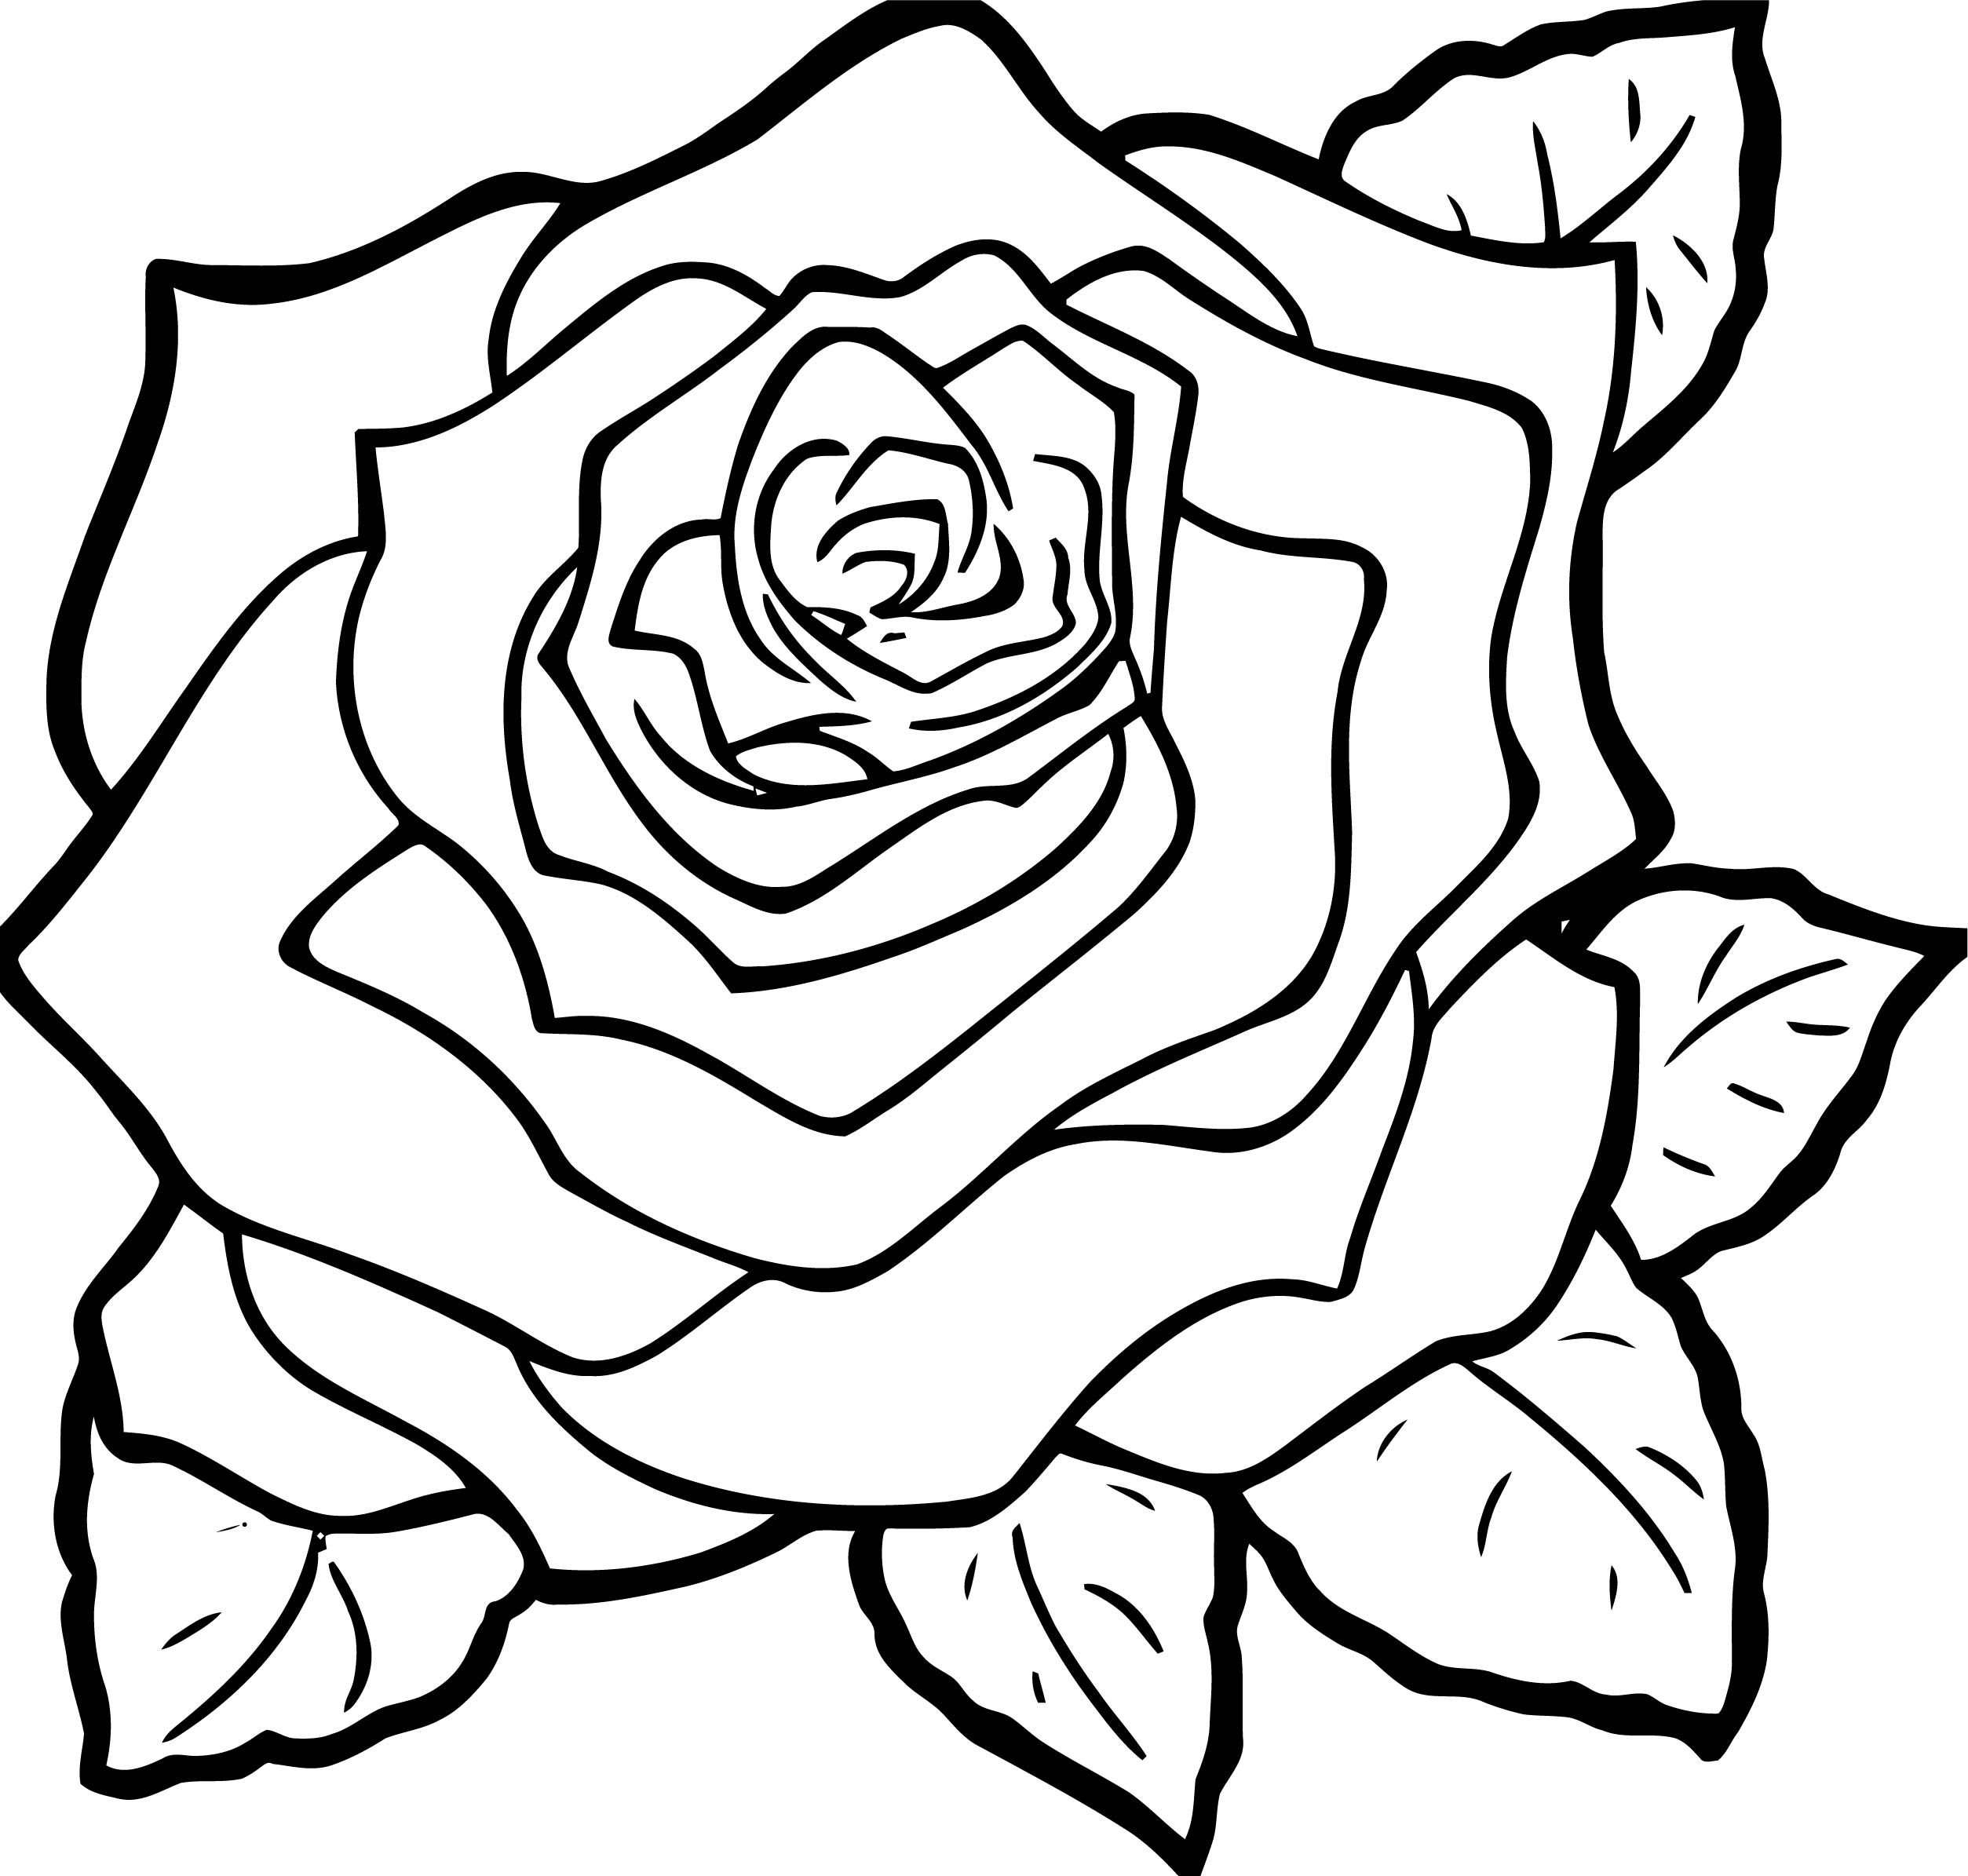 Rose Flower Coloring Page 018